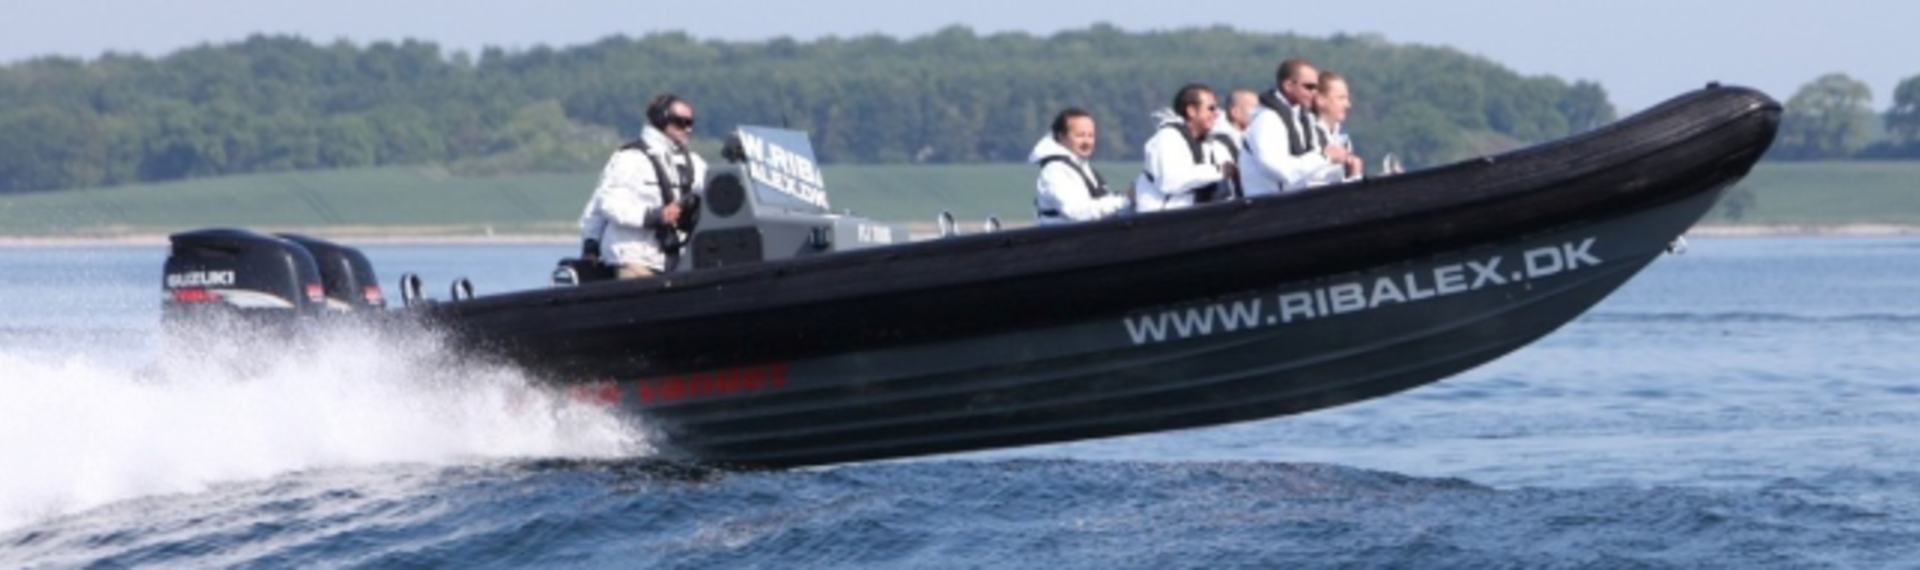 Copenhagen RIB - power boat racing image